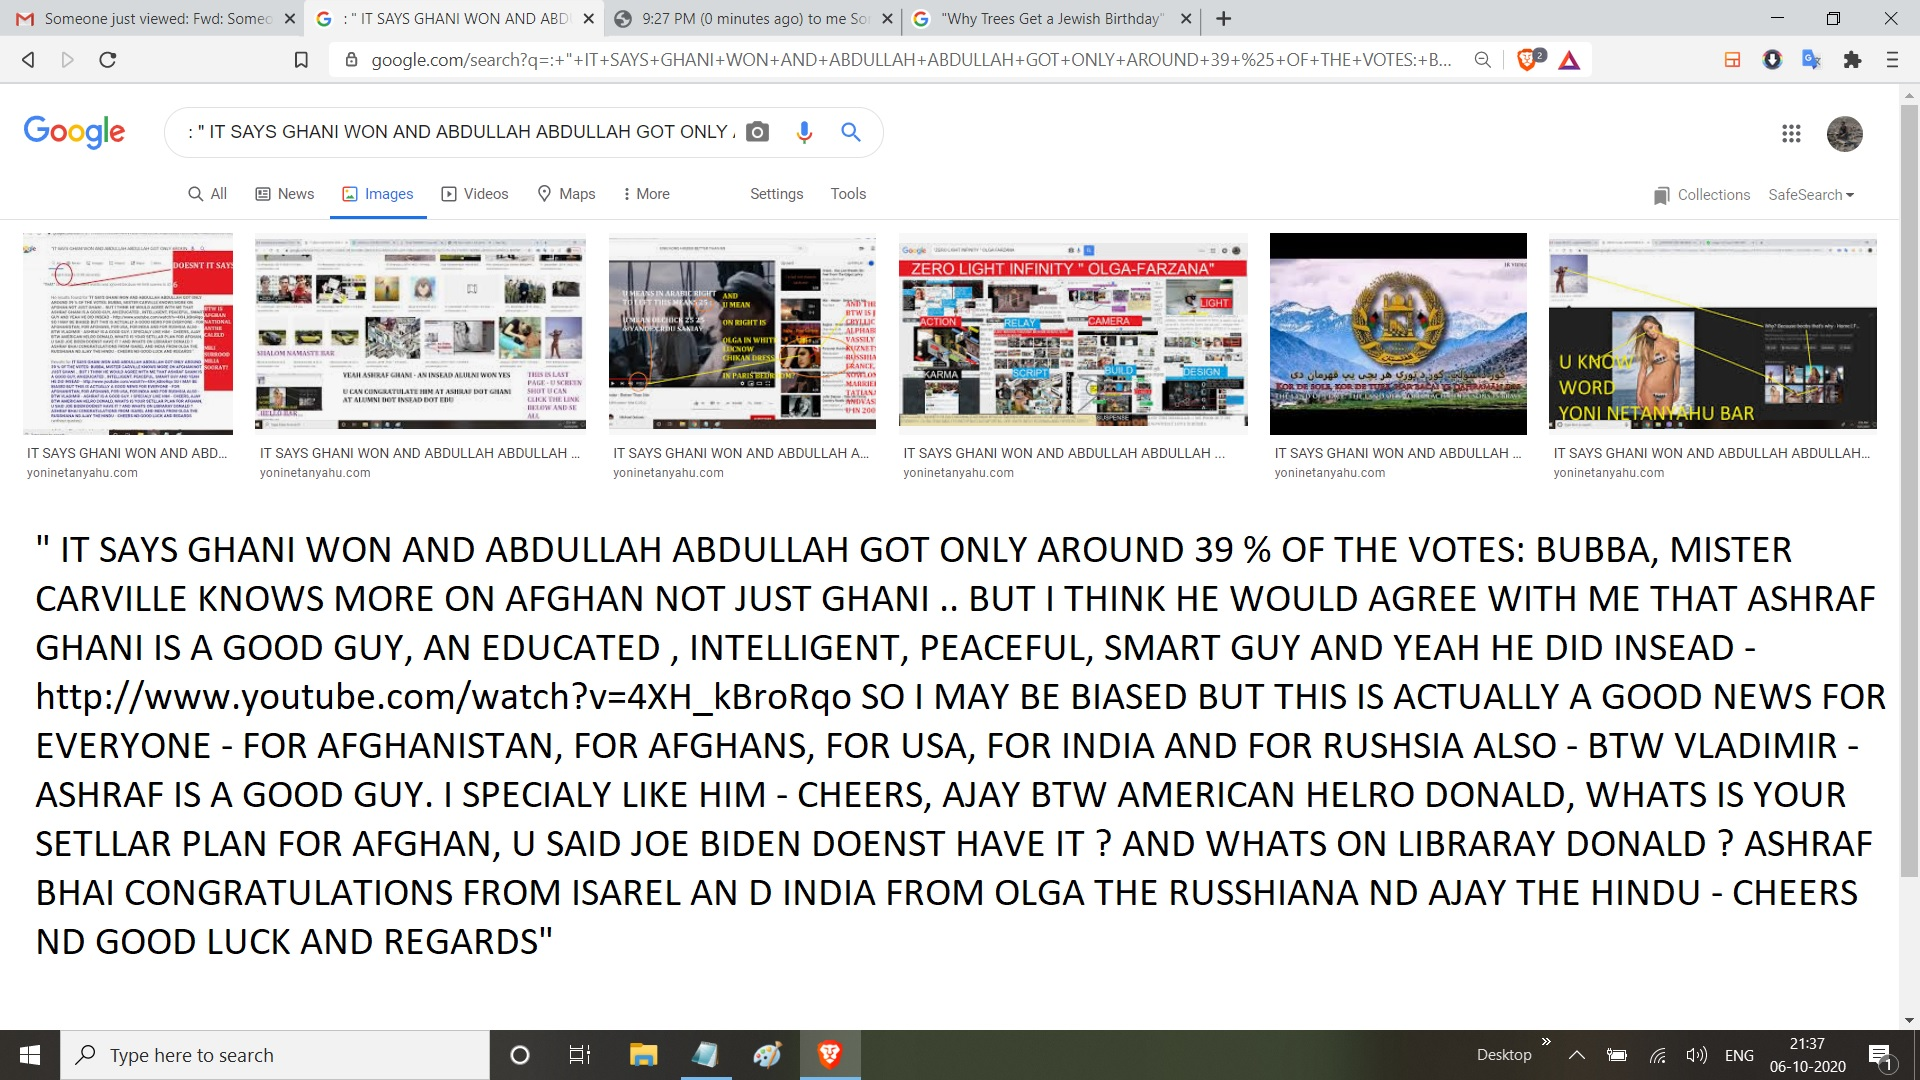 """: """" IT SAYS GHANI WON AND ABDULLAH ABDULLAH GOT ONLY AROUND 39 % OF THE VOTES: BUBBA, MISTER CARVILLE KNOWS MORE ON AFGHAN NOT JUST GHANI .. BUT I THINK HE WOULD AGREE WITH ME THAT ASHRAF GHANI IS A GOOD GUY, AN EDUCATED , INTELLIGENT, PEACEFUL, SMART GUY AND YEAH HE DID INSEAD - http://www.youtube.com/watch?v=4XH_kBroRqo SO I MAY BE BIASED BUT THIS IS ACTUALLY A GOOD NEWS FOR EVERYONE - FOR AFGHANISTAN, FOR AFGHANS, FOR USA, FOR INDIA AND FOR RUSHSIA ALSO - BTW VLADIMIR - ASHRAF IS A GOOD GUY. I SPECIALY LIKE HIM - CHEERS, AJAY BTW AMERICAN HELRO DONALD, WHATS IS YOUR SETLLAR PLAN FOR AFGHAN, U SAID JOE BIDEN DOENST HAVE IT ? AND WHATS ON LIBRARAY DONALD ? ASHRAF BHAI CONGRATULATIONS FROM ISAREL AN D INDIA FROM OLGA THE RUSSHIANA ND AJAY THE HINDU - CHEERS ND GOOD LUCK AND REGARDS"""""""